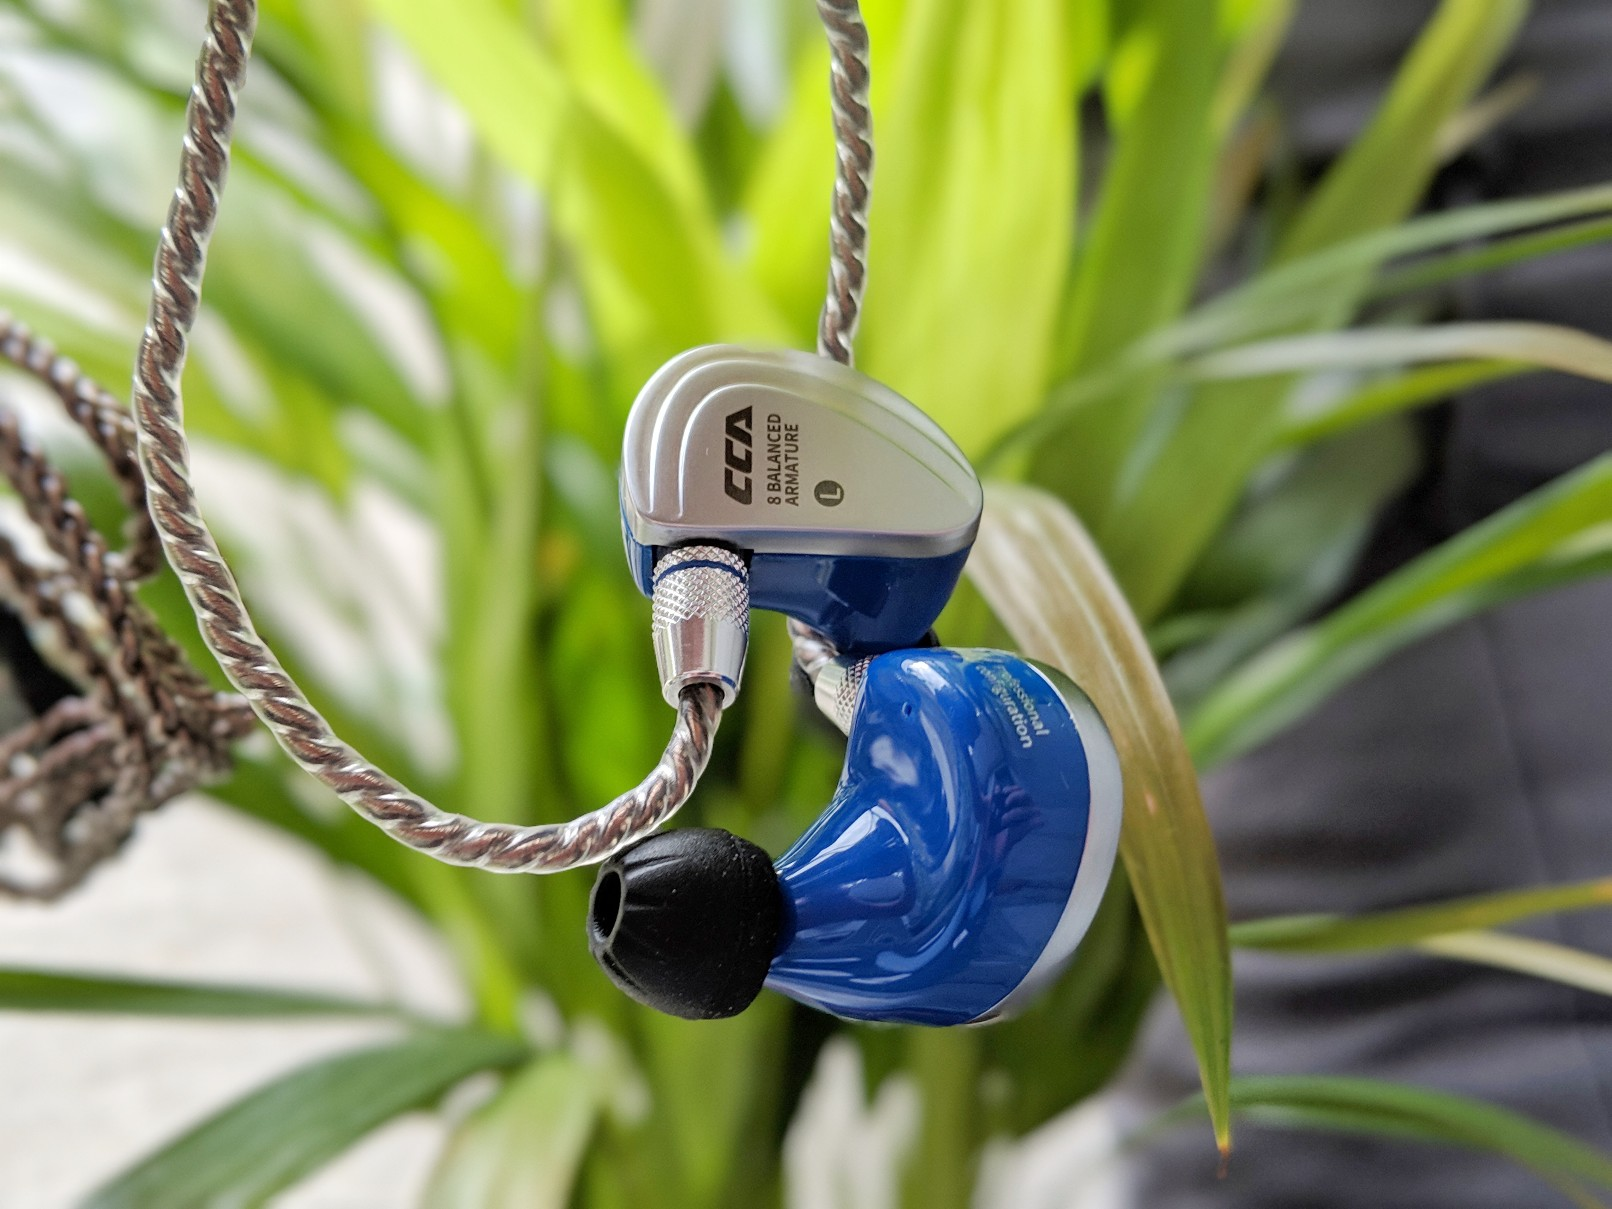 Review of the CCA C16 earphones and earbuds.